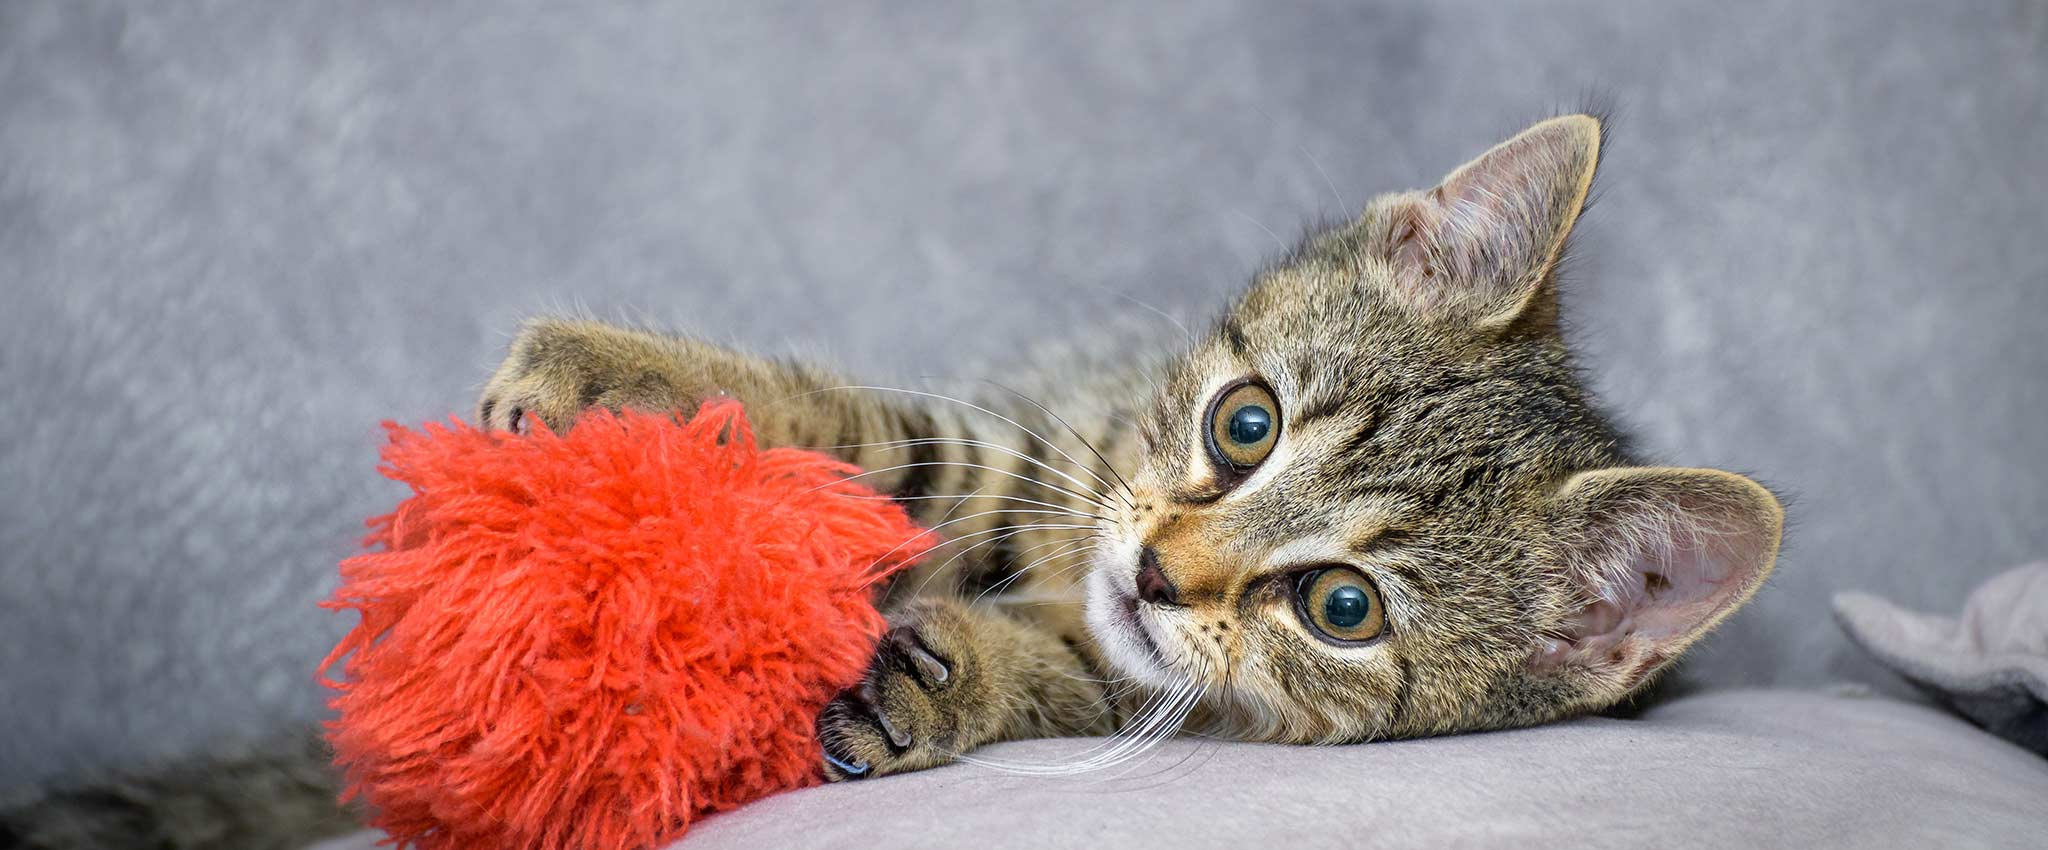 Cat playing with a pompom